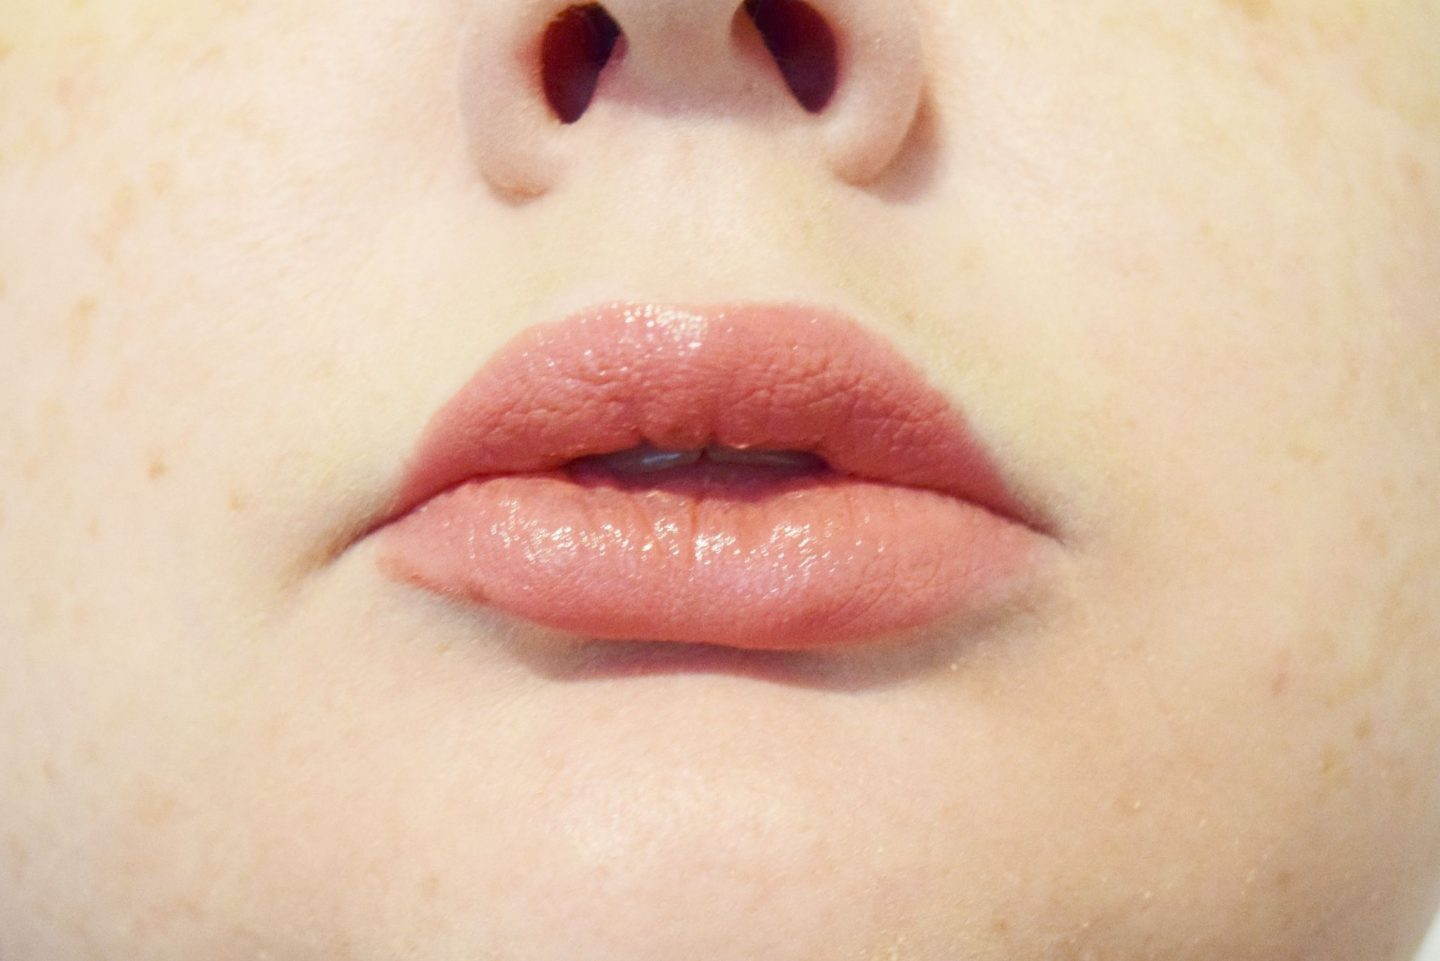 Burt's Bees Gloss Lipstick in 516 Rose Falls swatch